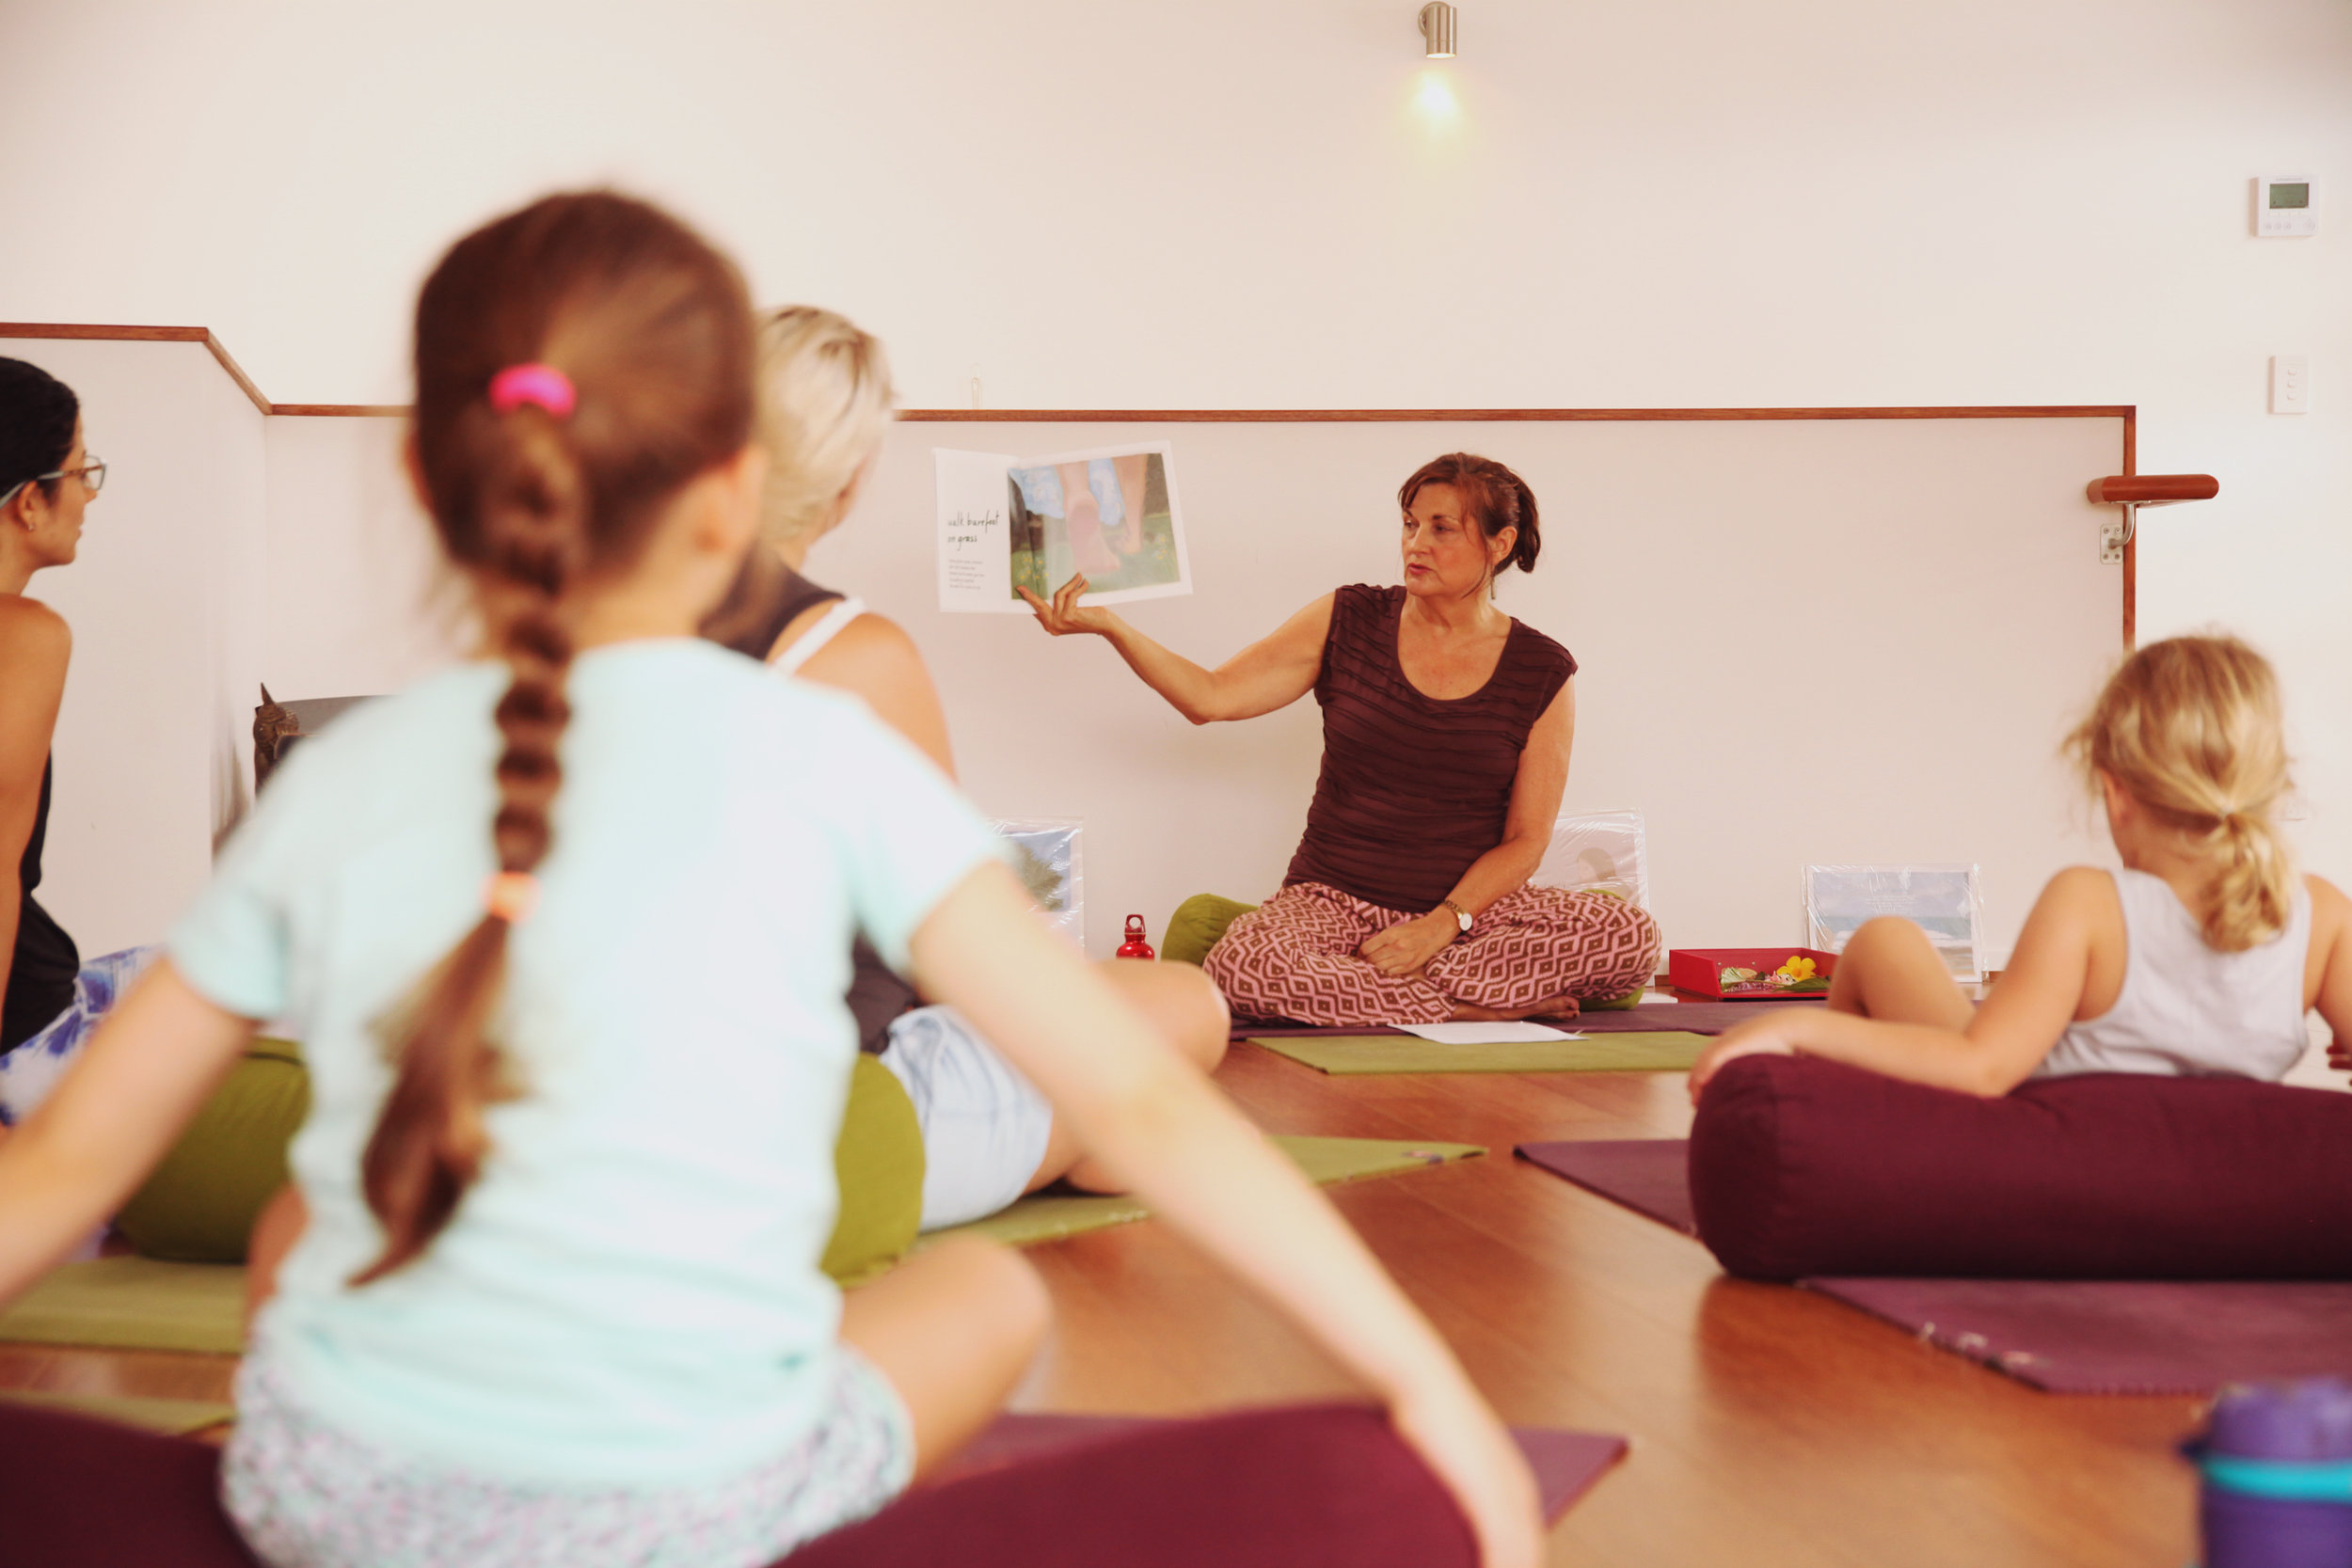 mindfulness-for-kids-workshops-brisbane-australia.jpg